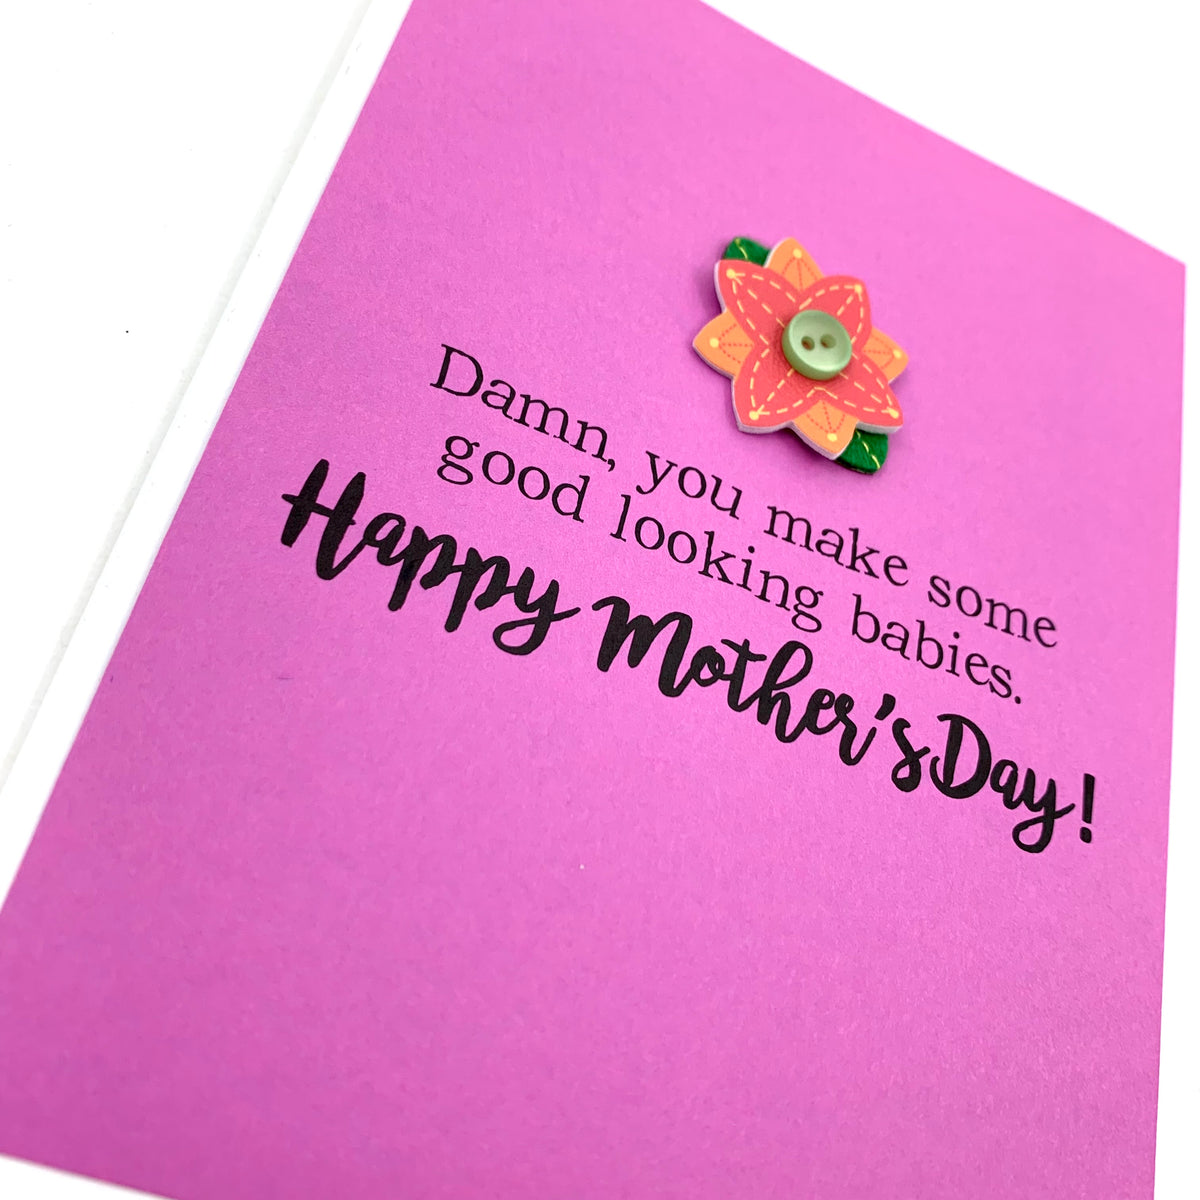 Mother's Day Good Looking Babies card